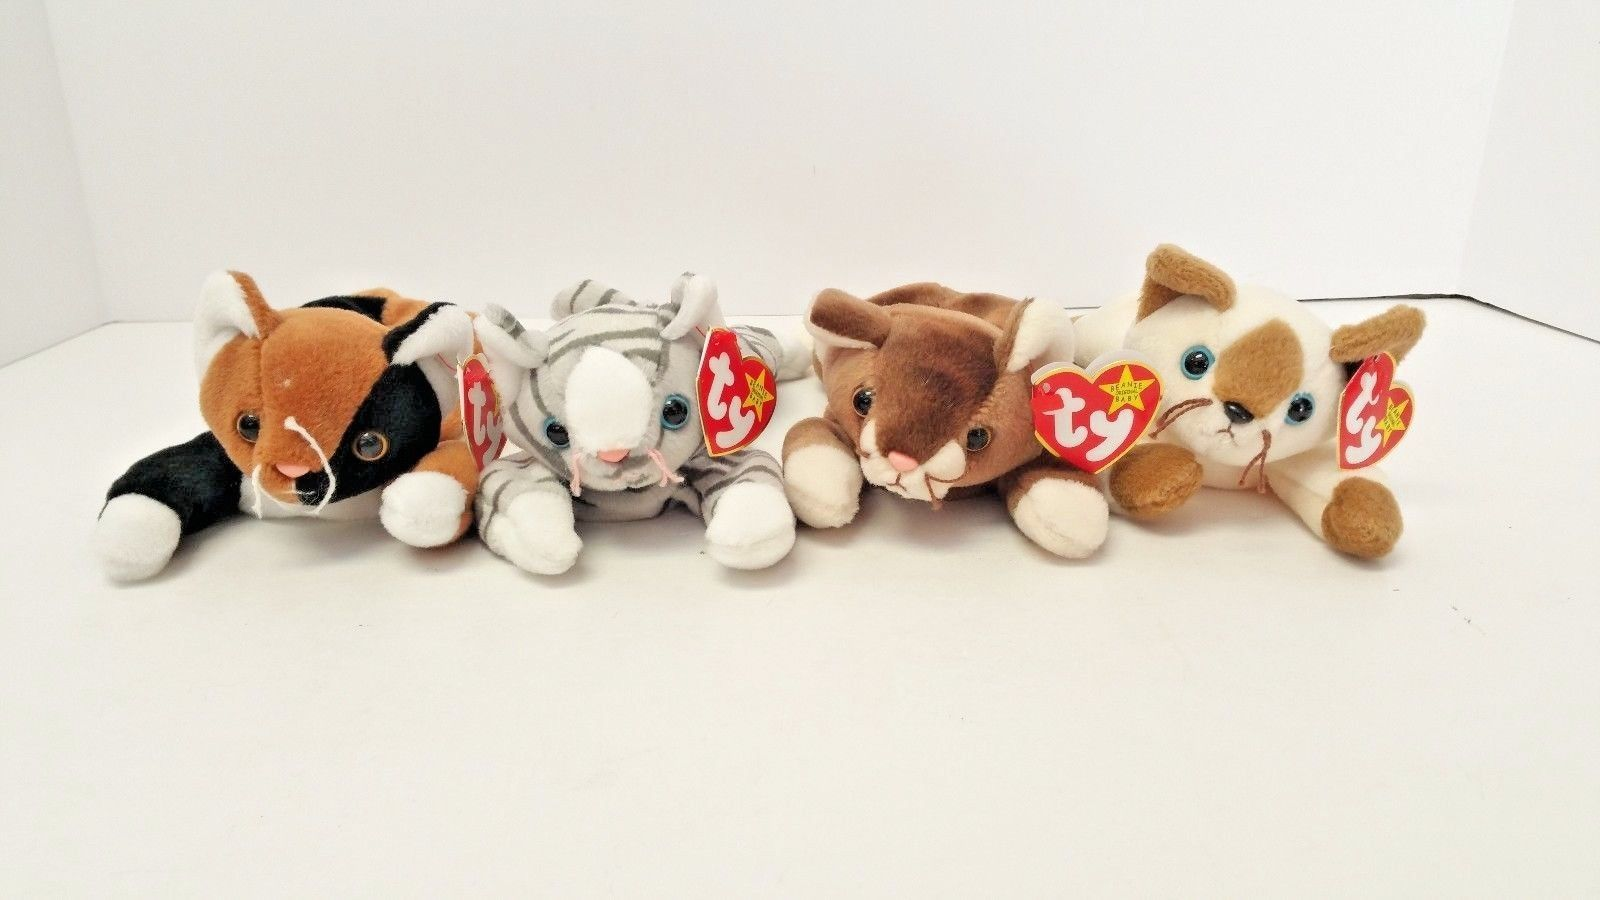 b60cf92dc31 TY Original Beanie Babies Chip Pounce Prance and 50 similar items. 57